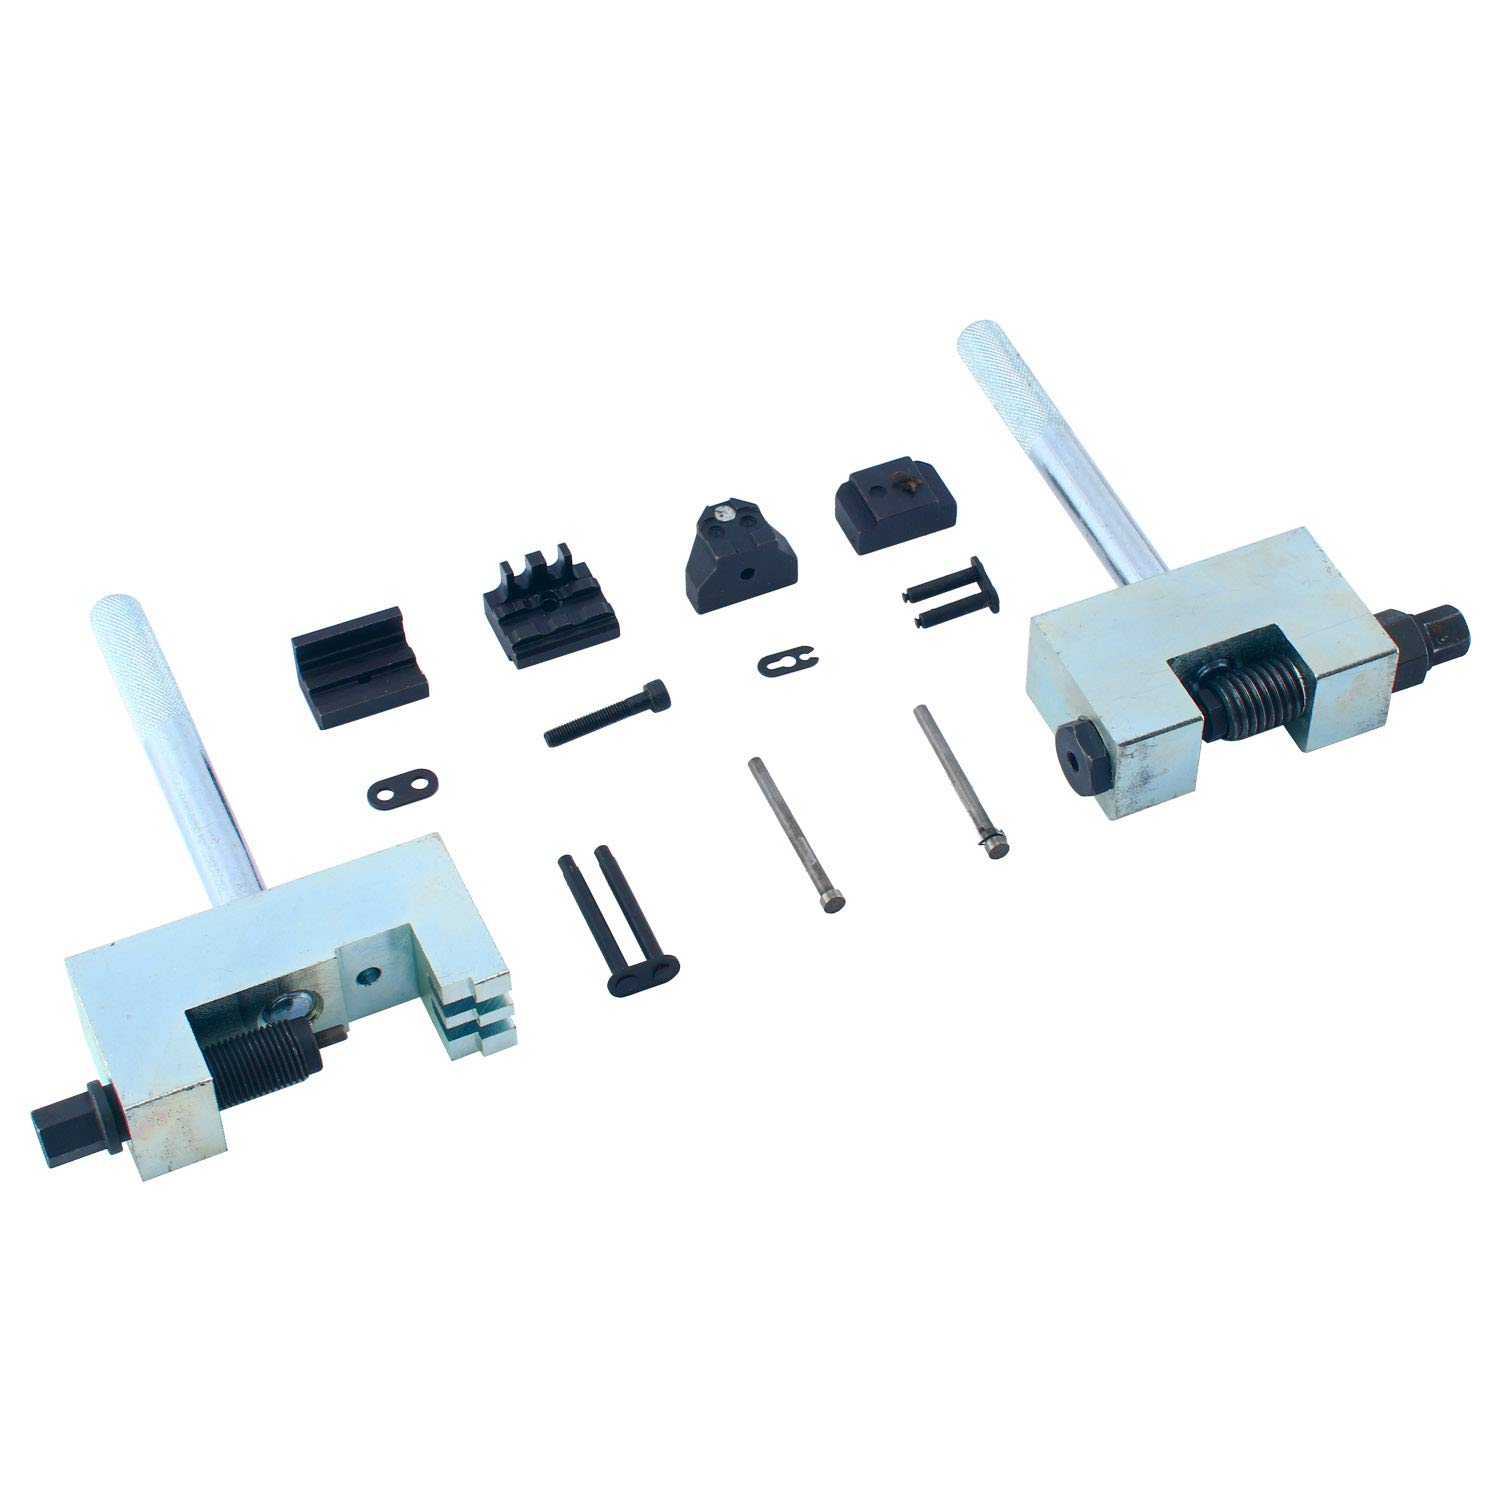 Tool Sets Compatible for Timing Chain Change Vehicle Motor Niet ...